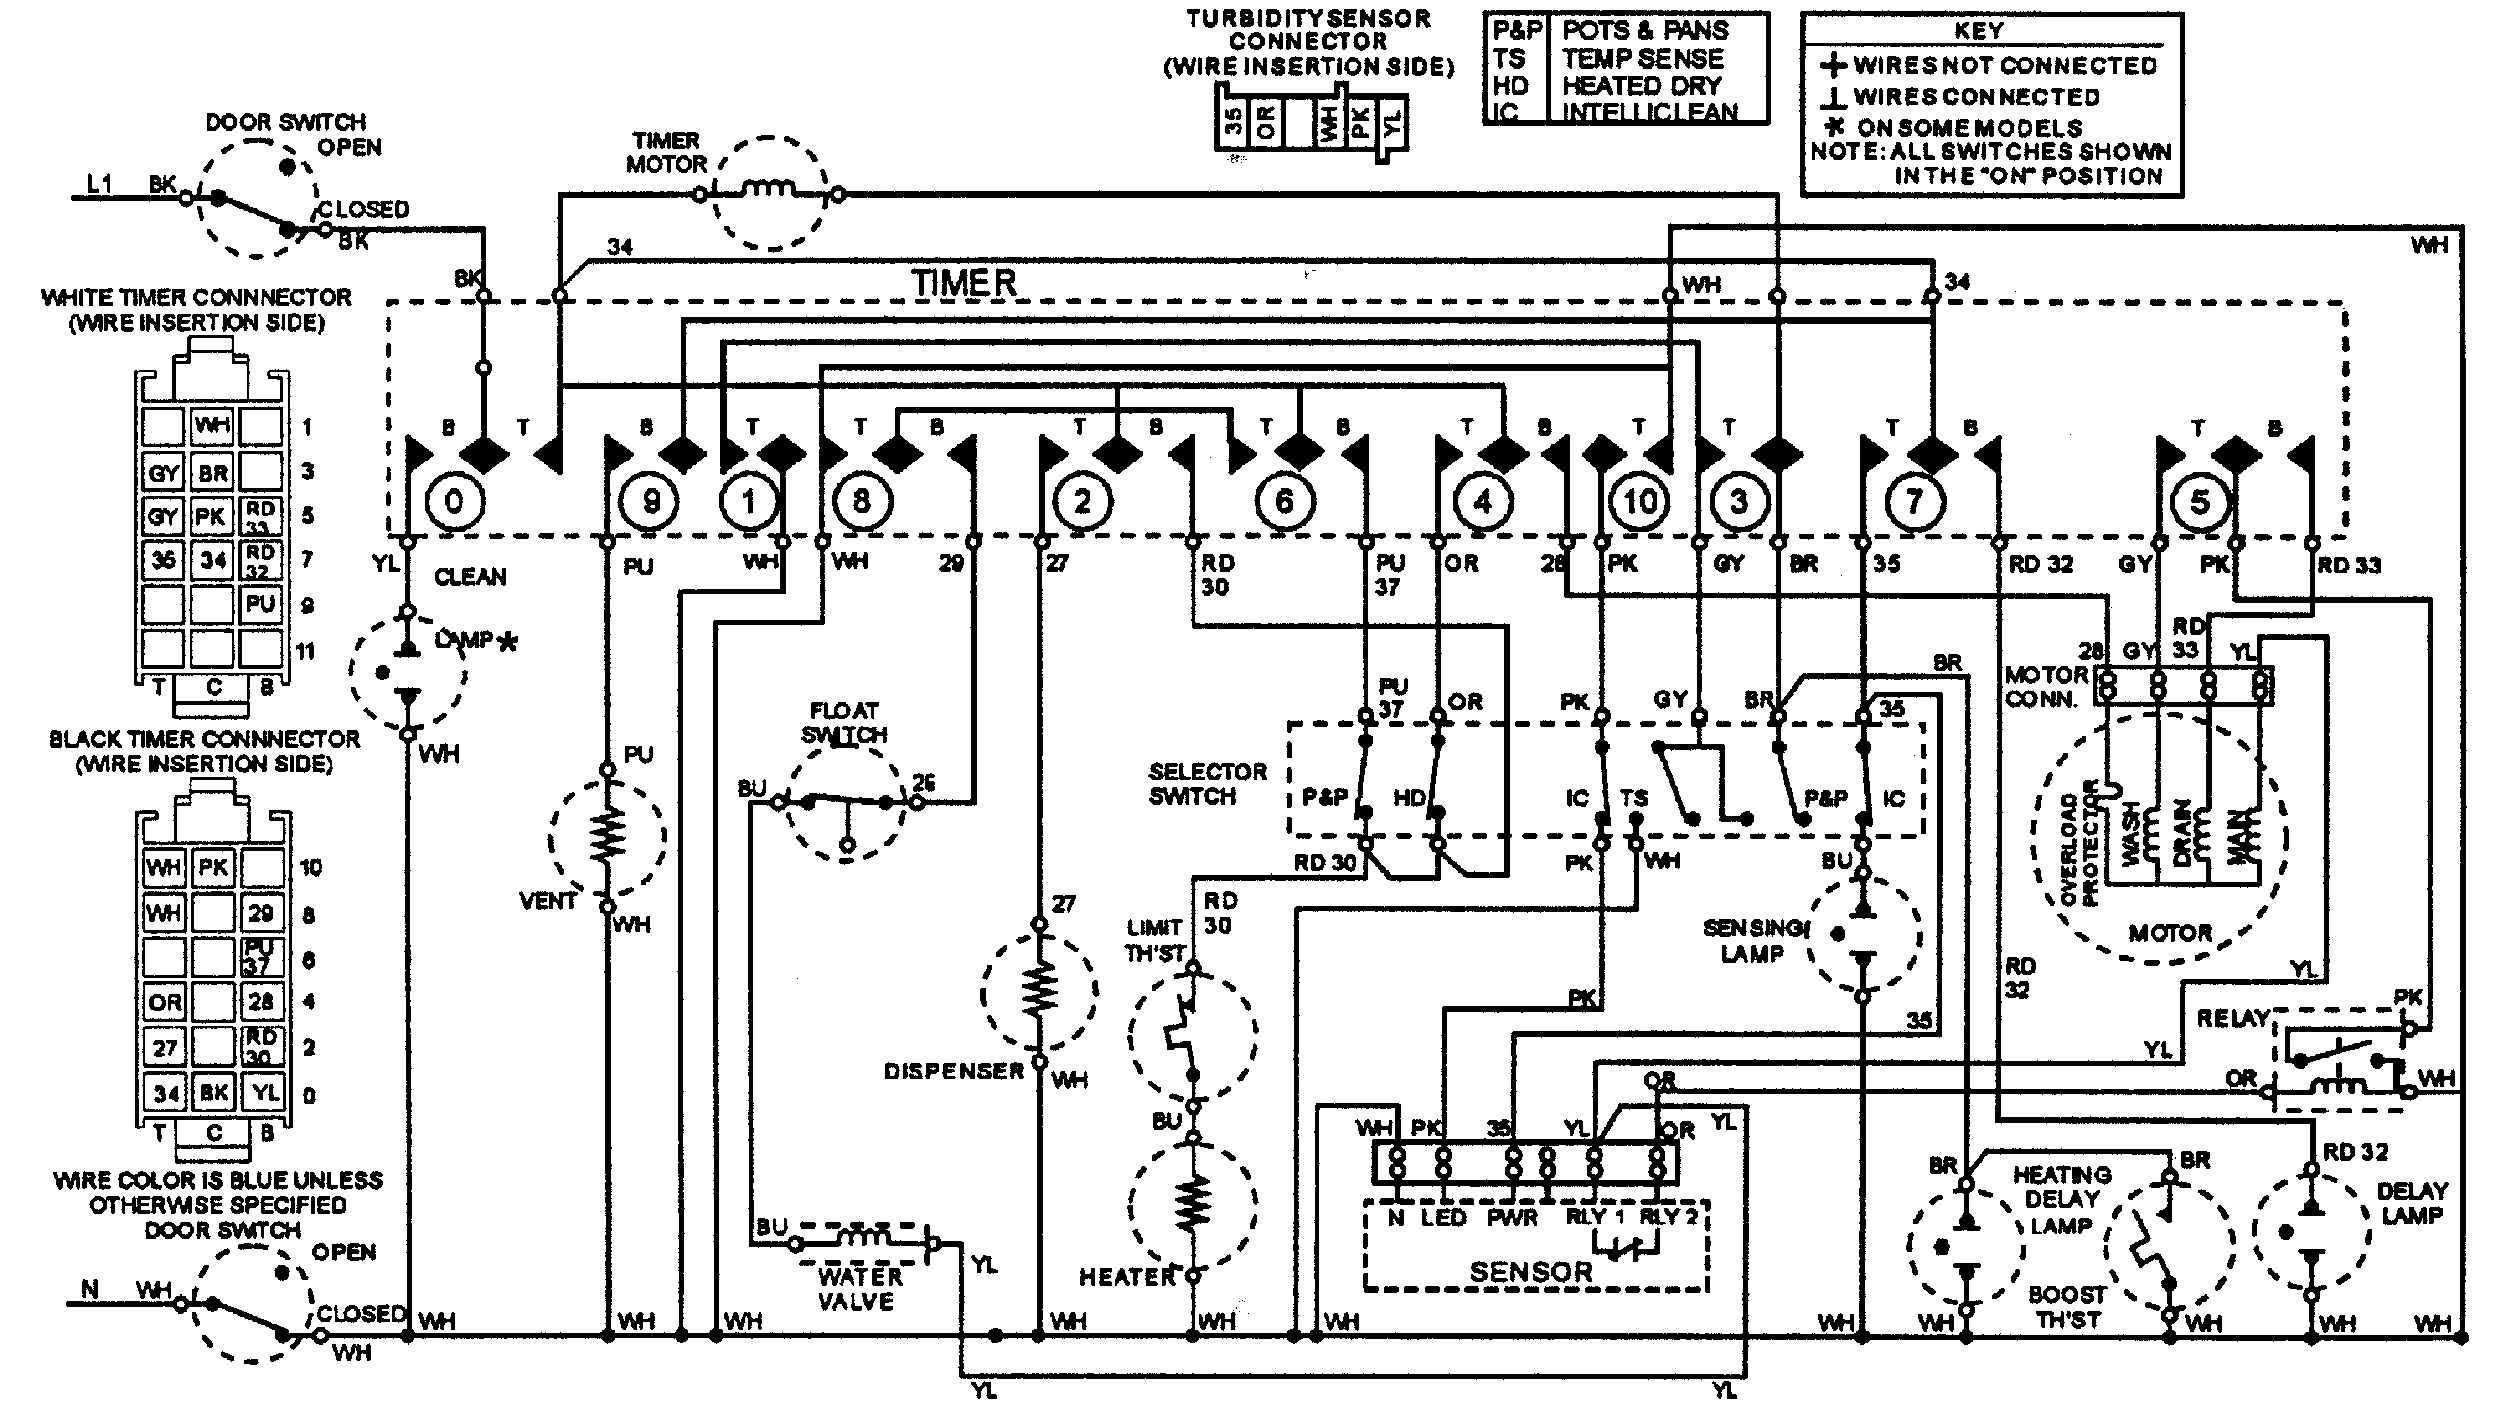 Whirlpool Appliances Wiring Diagram Great Design Of Toaster Oven Switch On Schematic Diagrams For Ge Microwave Dishwasher Get Free Electrical